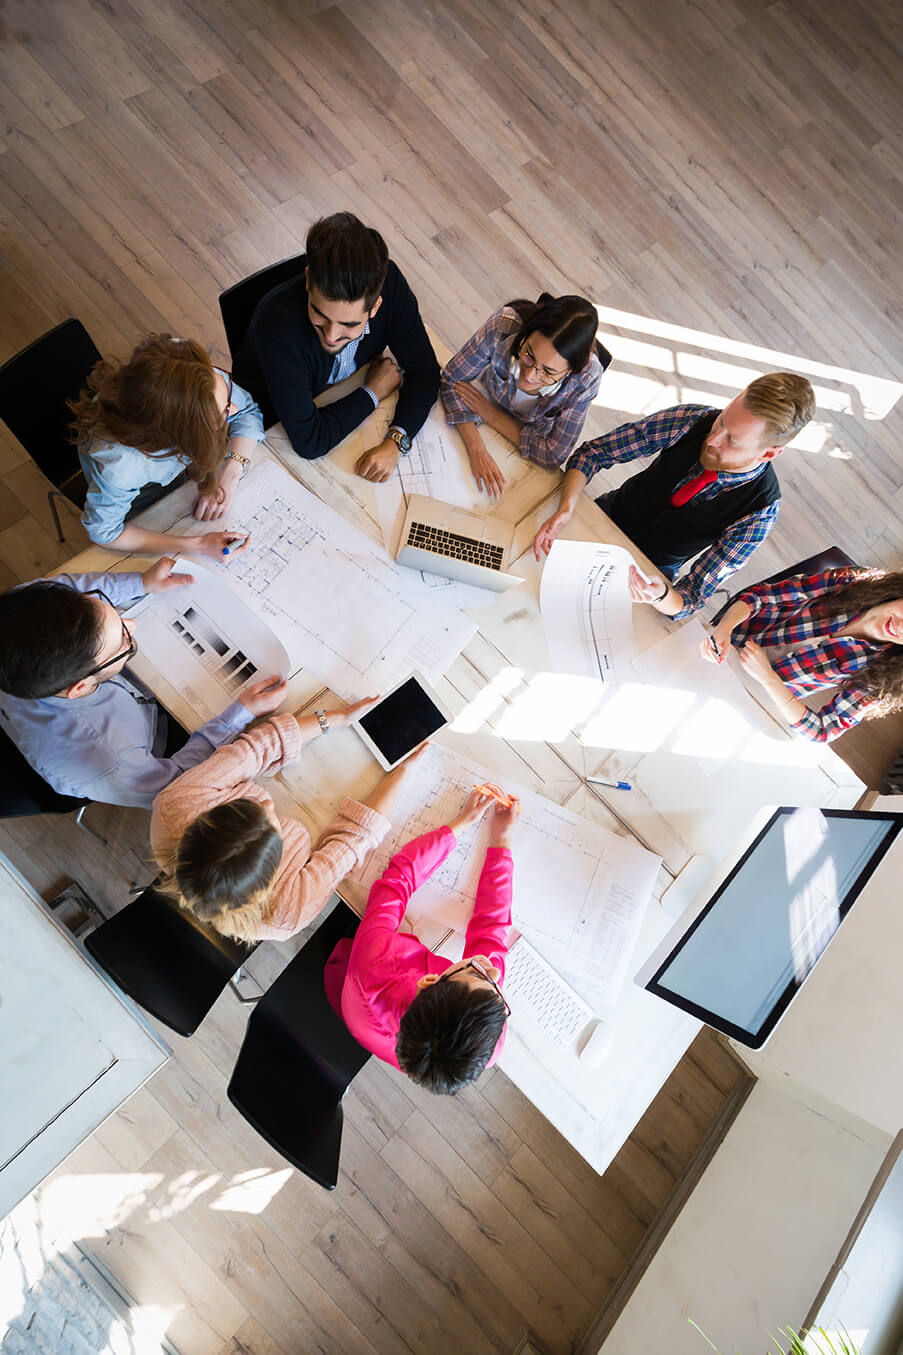 Business people at conference room table developing marketing strategy